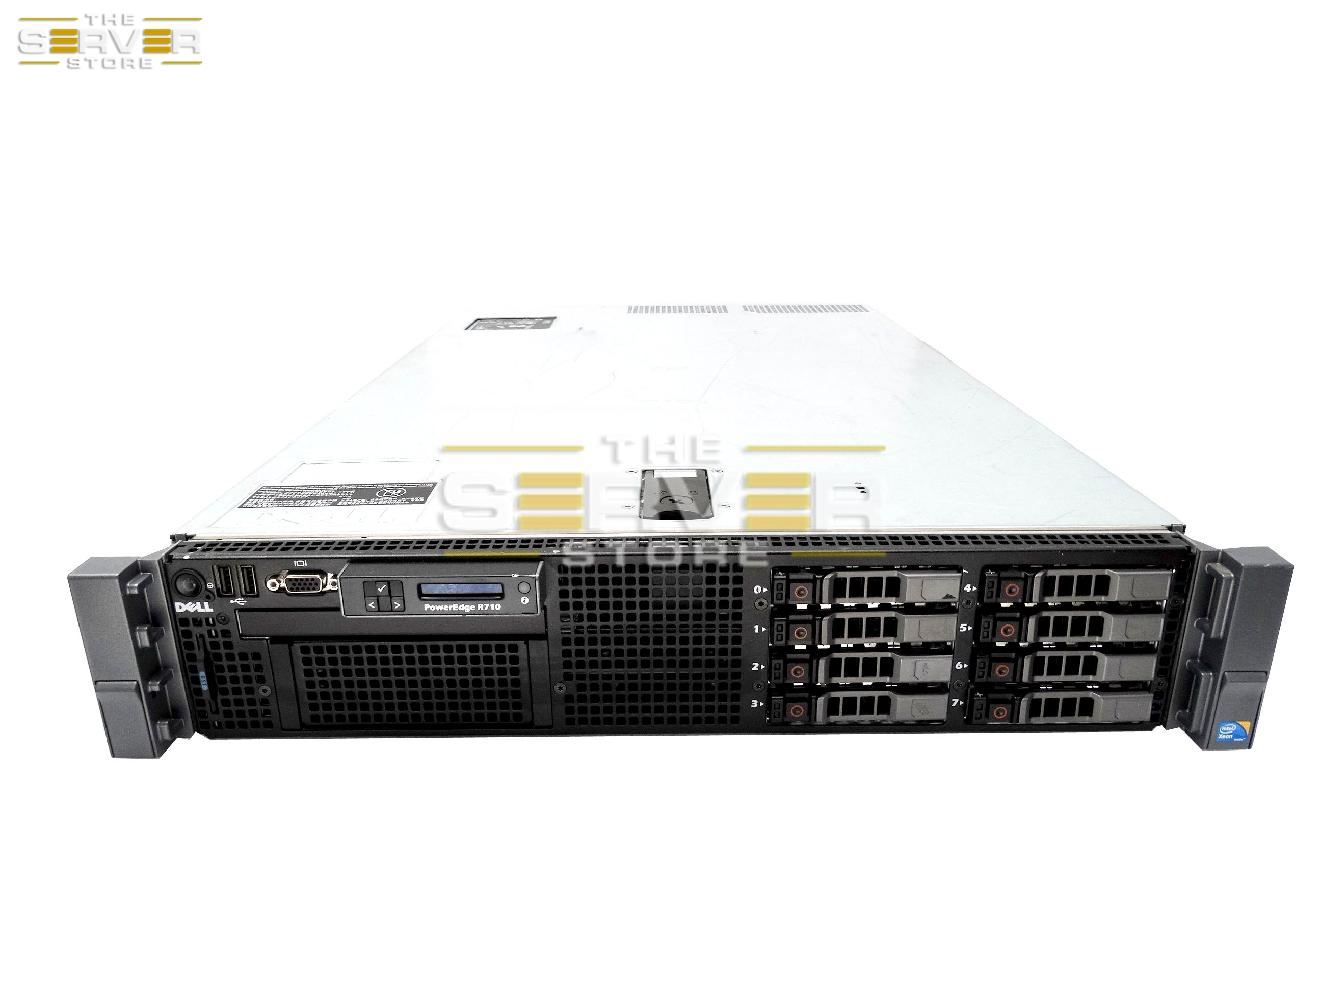 Dell Poweredge R710 Virtualization Server 12 Core 48GB 4x 300GB 15K 1.2TB Perc 6i Sale!